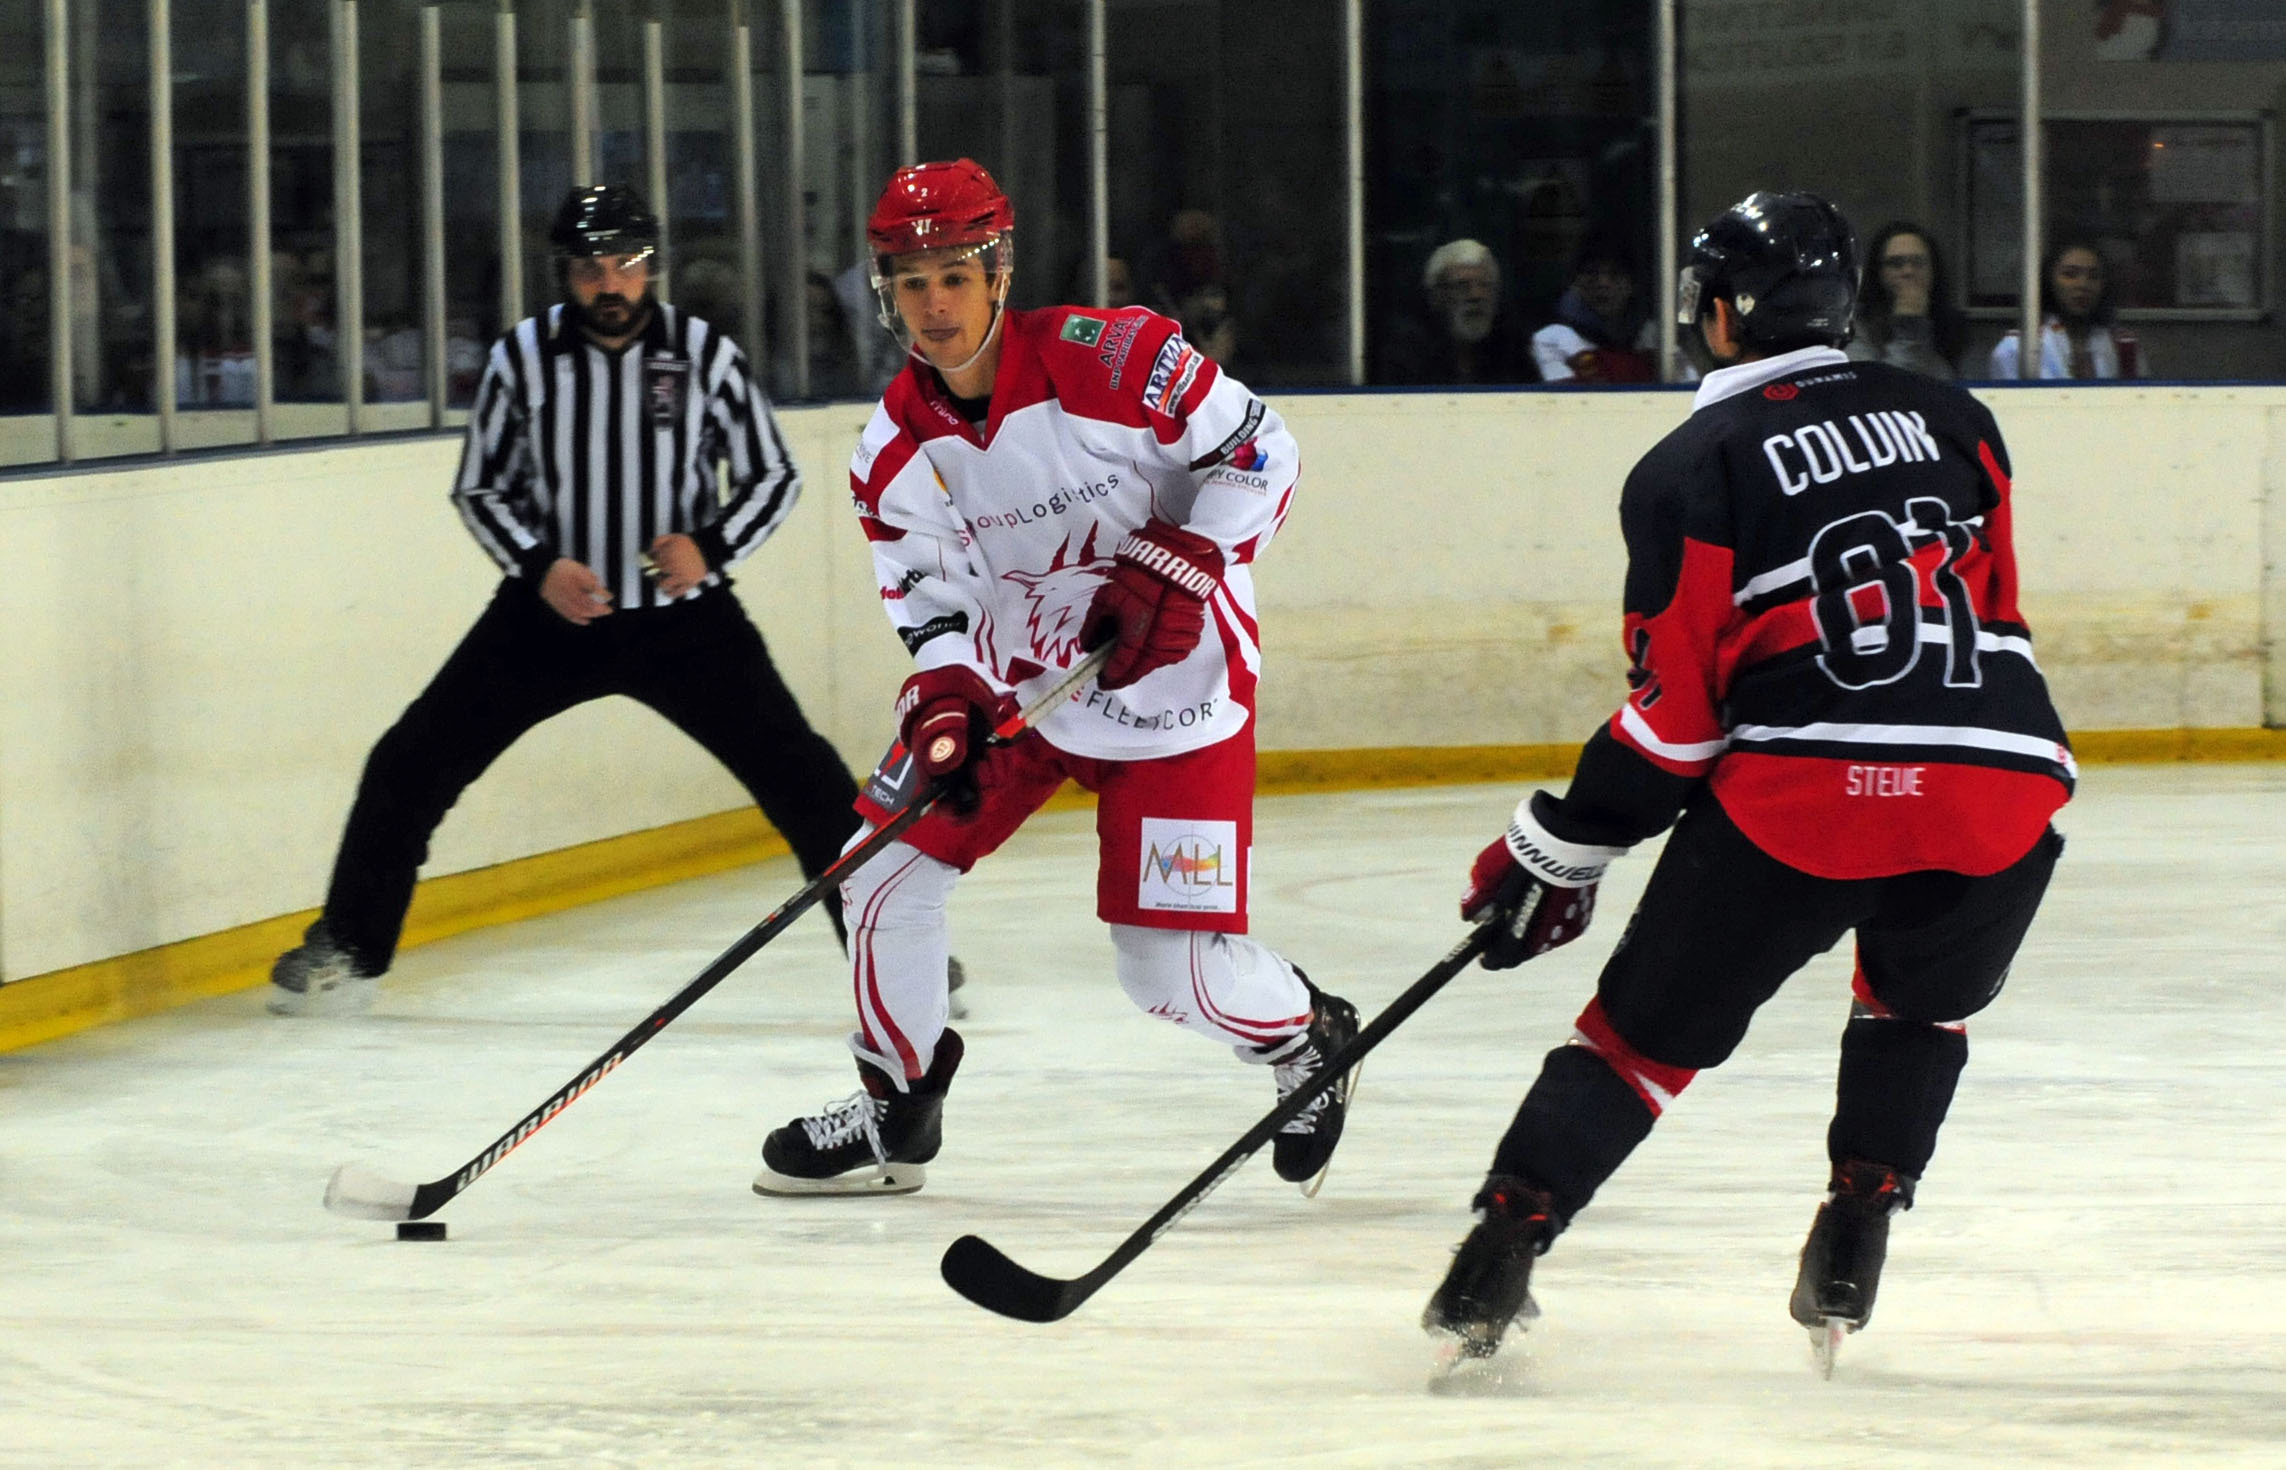 Swindon Wildcats (red/white) v Invicta Dynamos (red/black). Pic shows Sam Jones for Swindon.